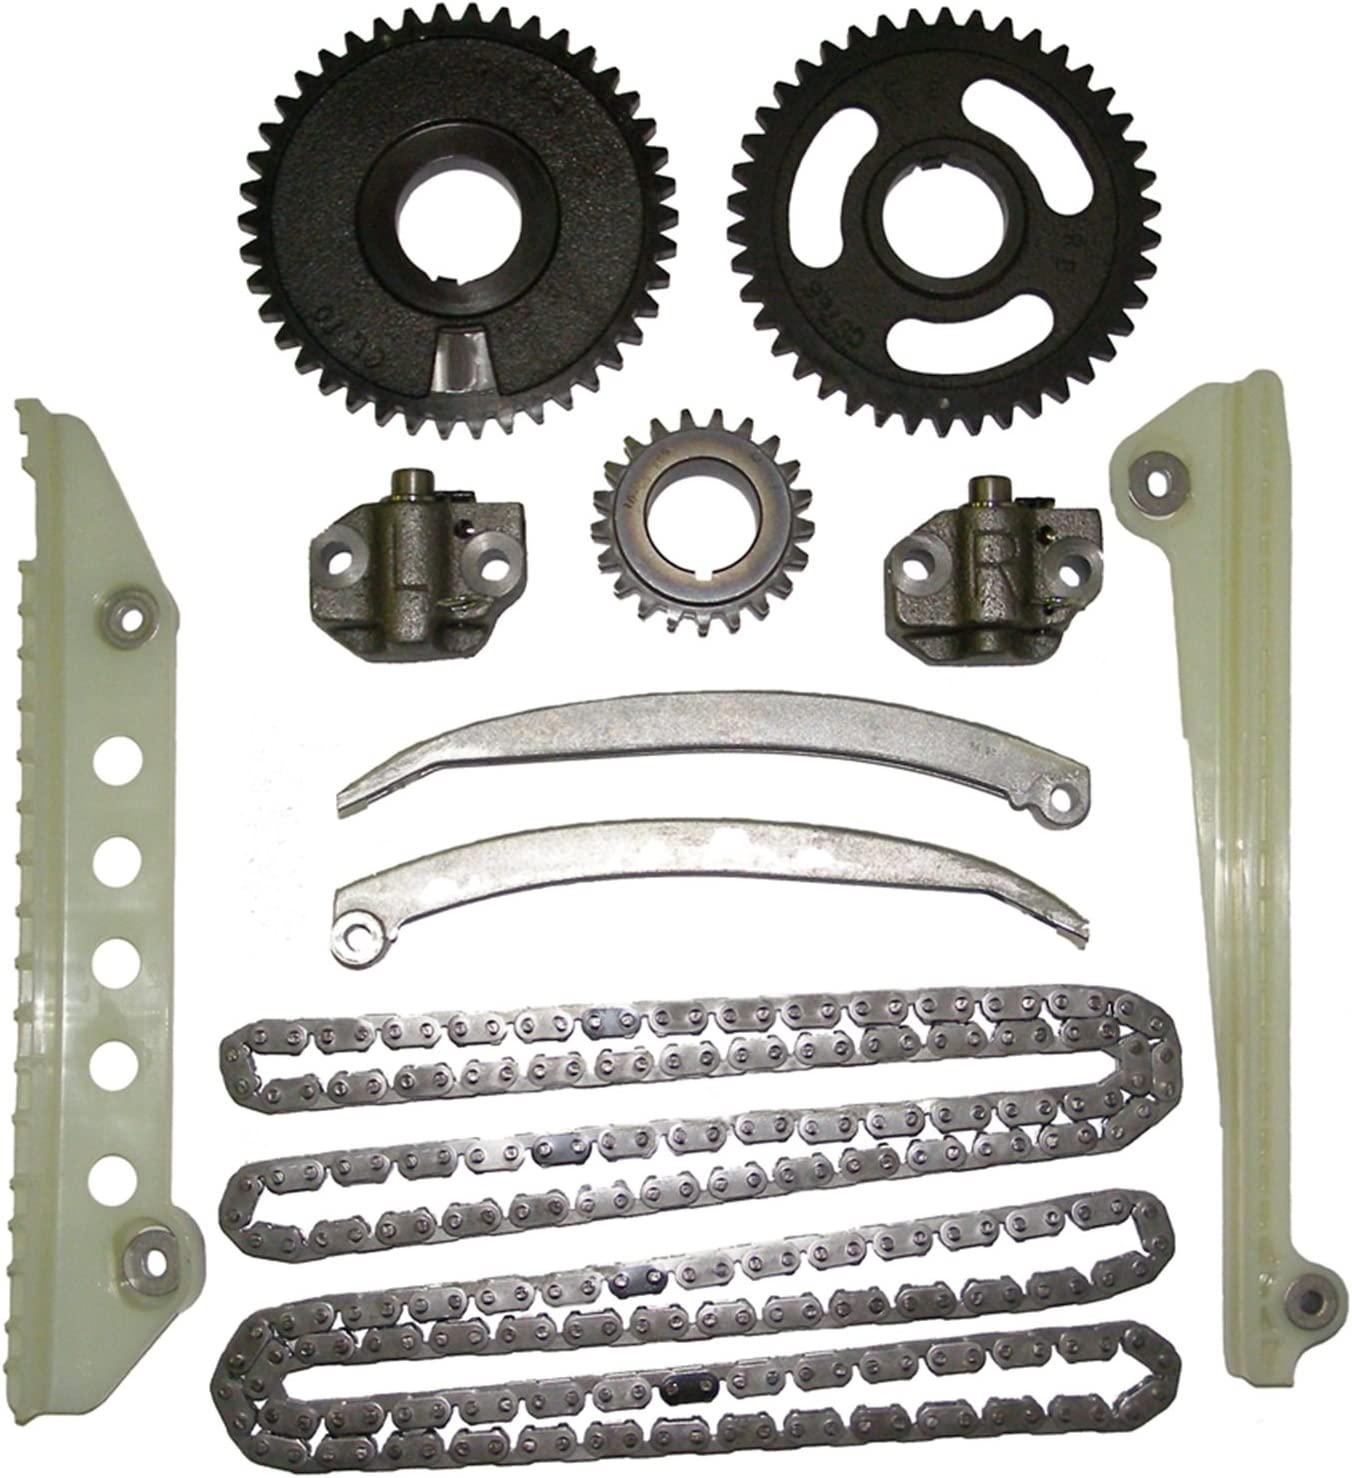 Cloyes 9-0387SGX Timing Chain